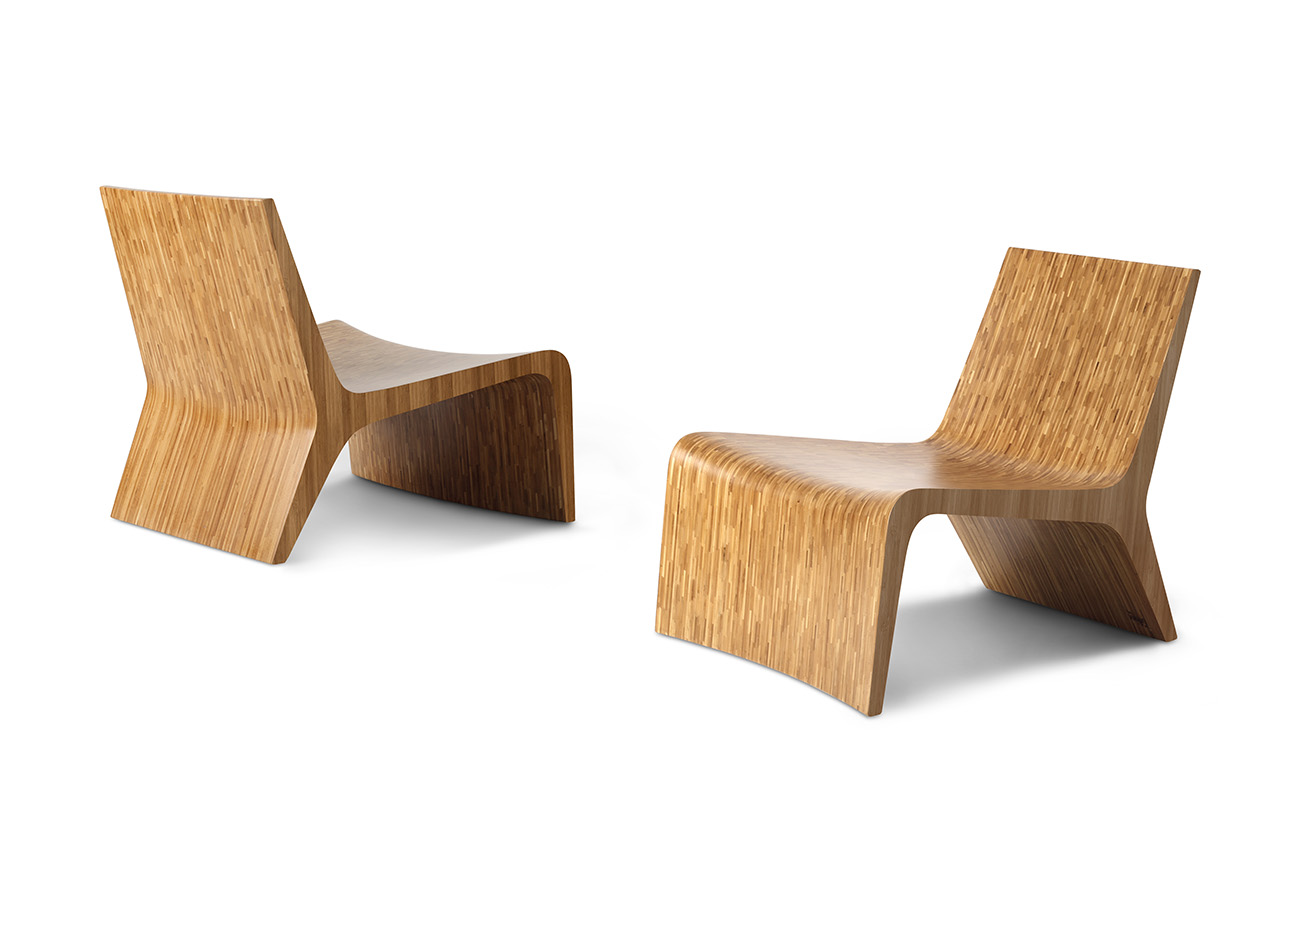 New design Solid Bamboo Lounge Chair 6023